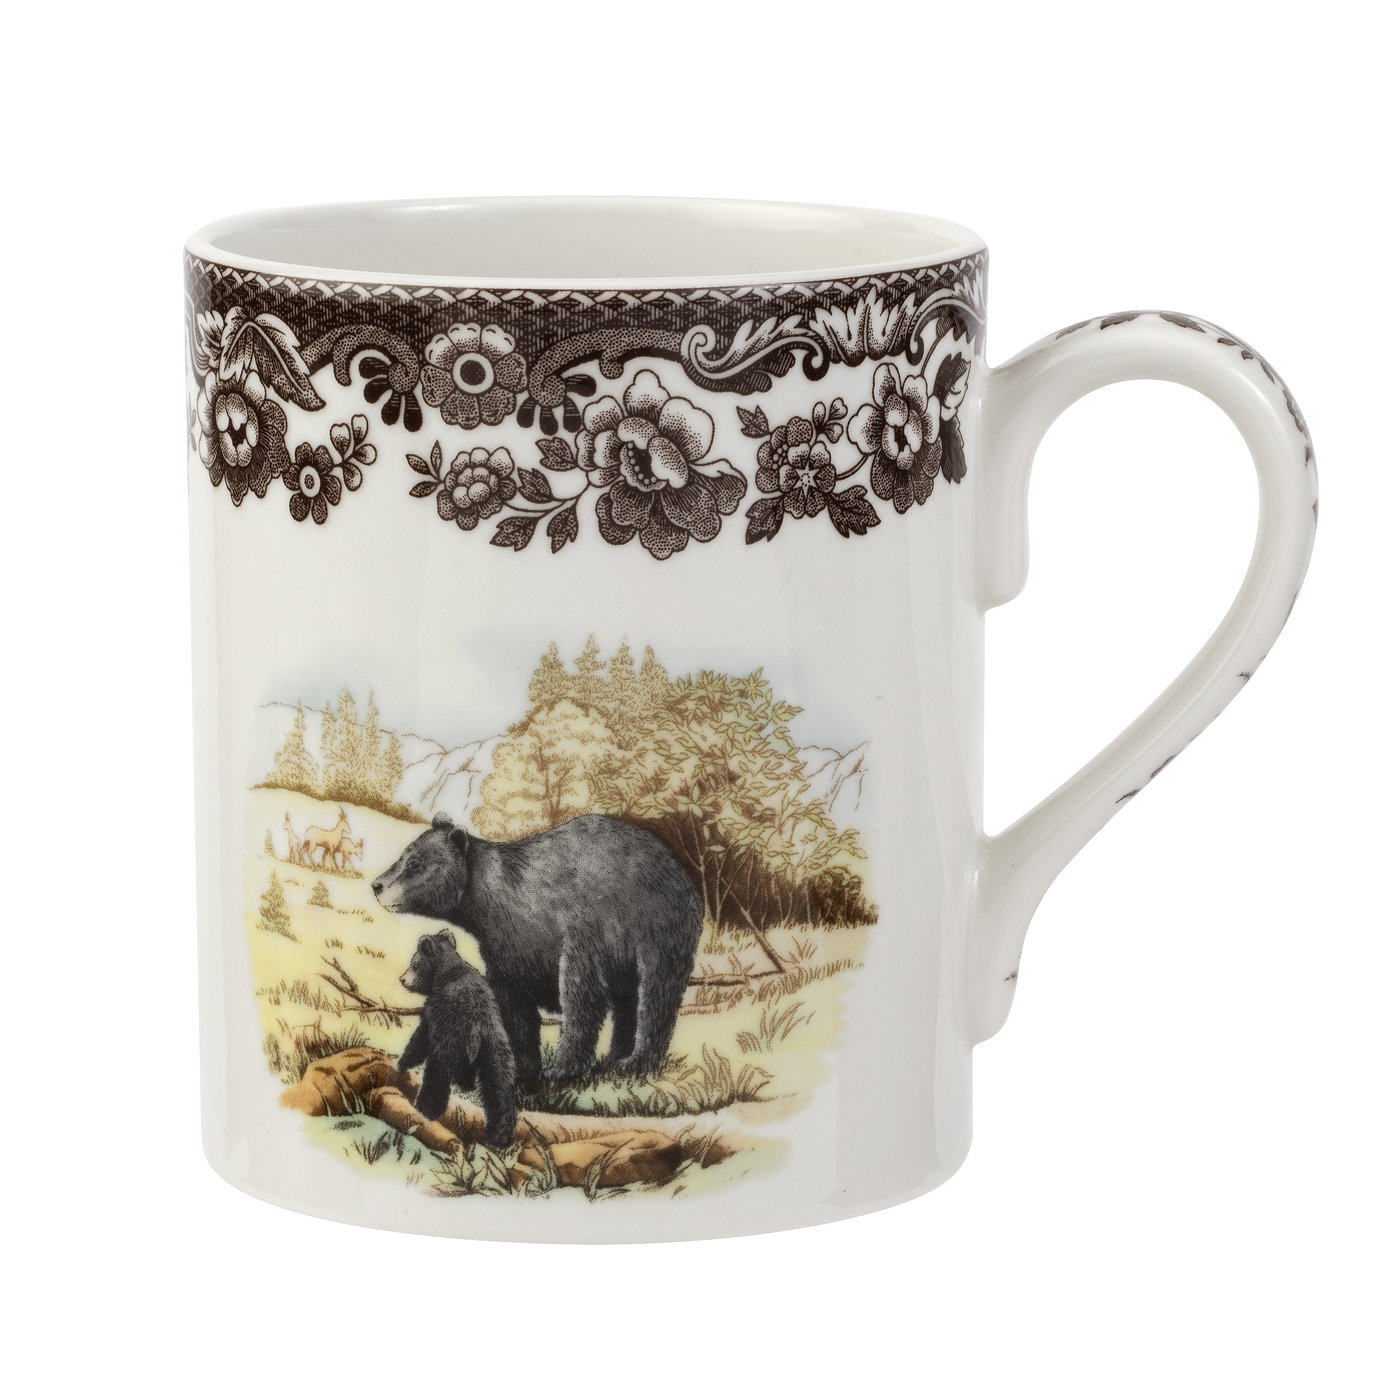 Spode Woodland Mug 16 oz (Black Bear) image number 0